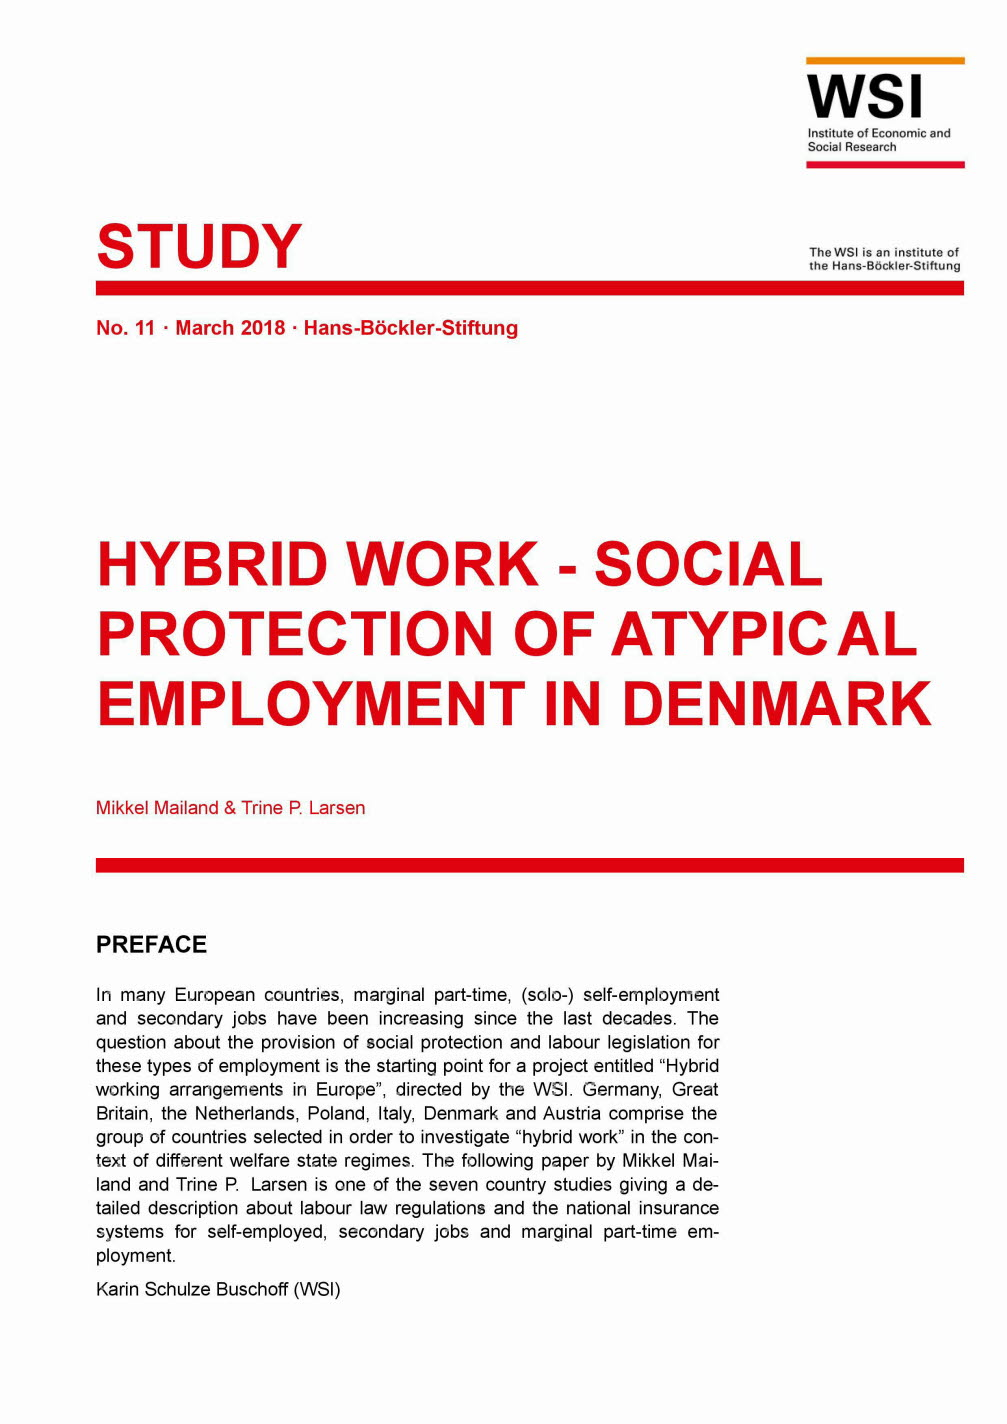 Hybrid work - social protection of atypical employment in Denmark